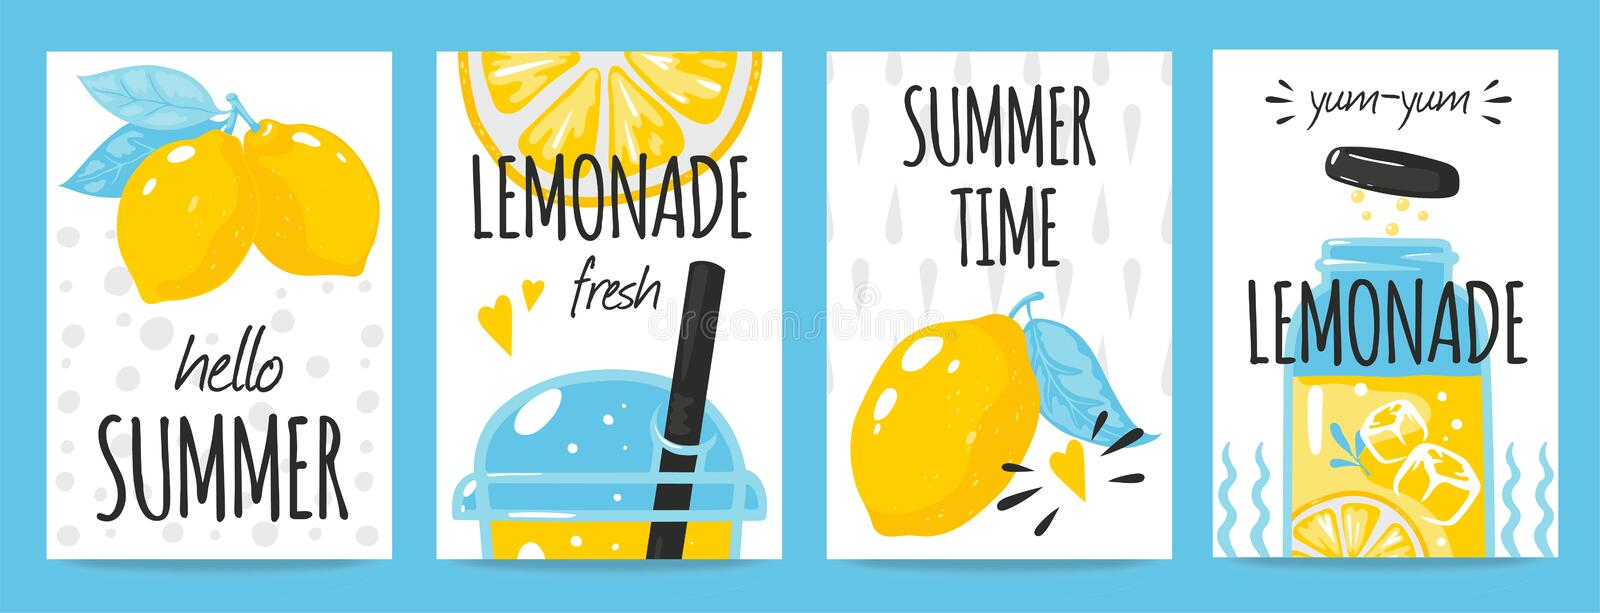 Hand drawn lemon posters. Quote typography and summer lemonade drink vintage cards, Vector fresh lemons doodle royalty free illustration